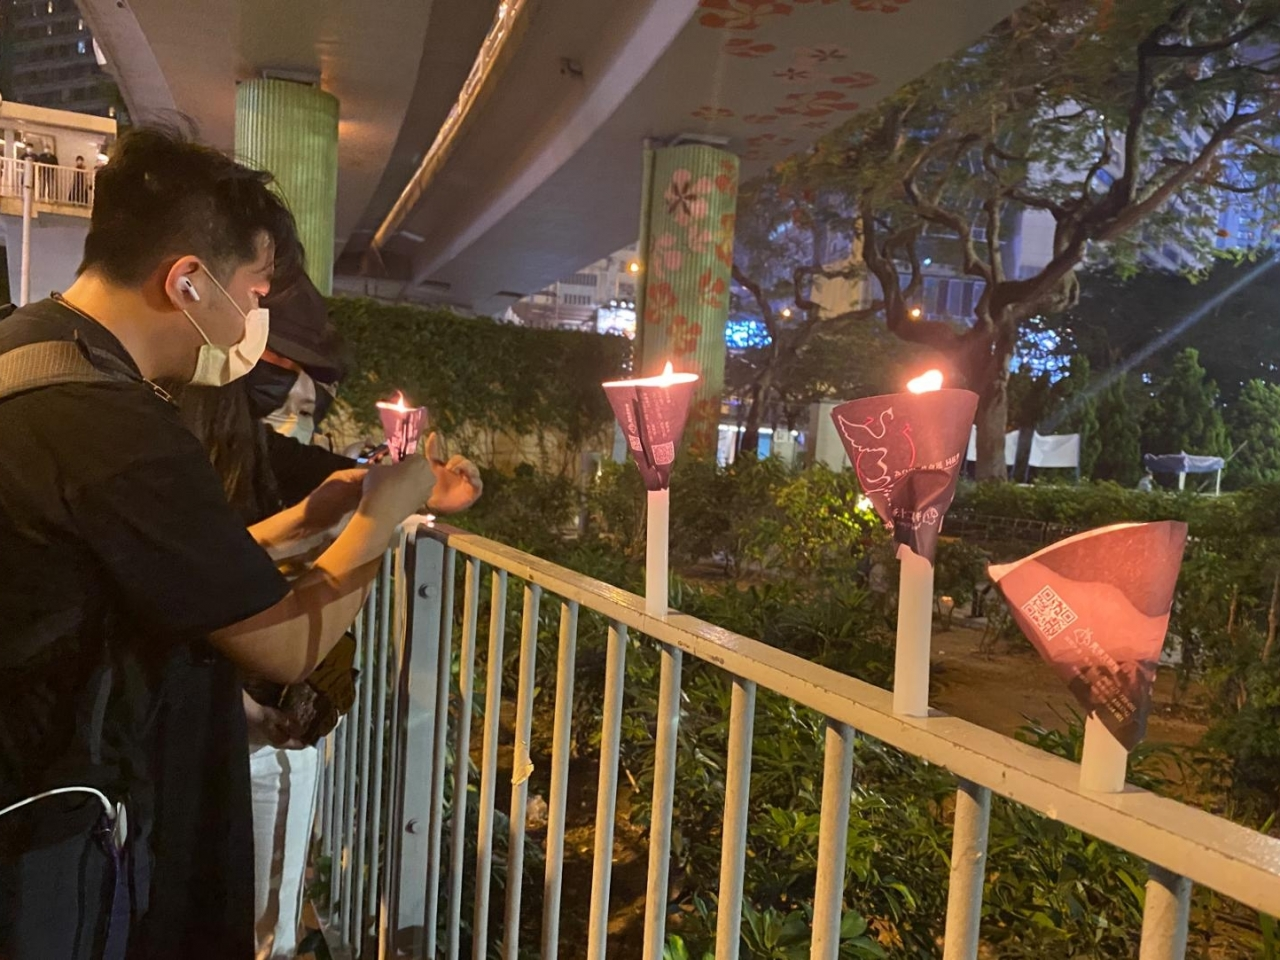 Mourners of the 1989 crackdown in Beijing lit candles around Victoria Park before police usher them away. Photo: RTHK